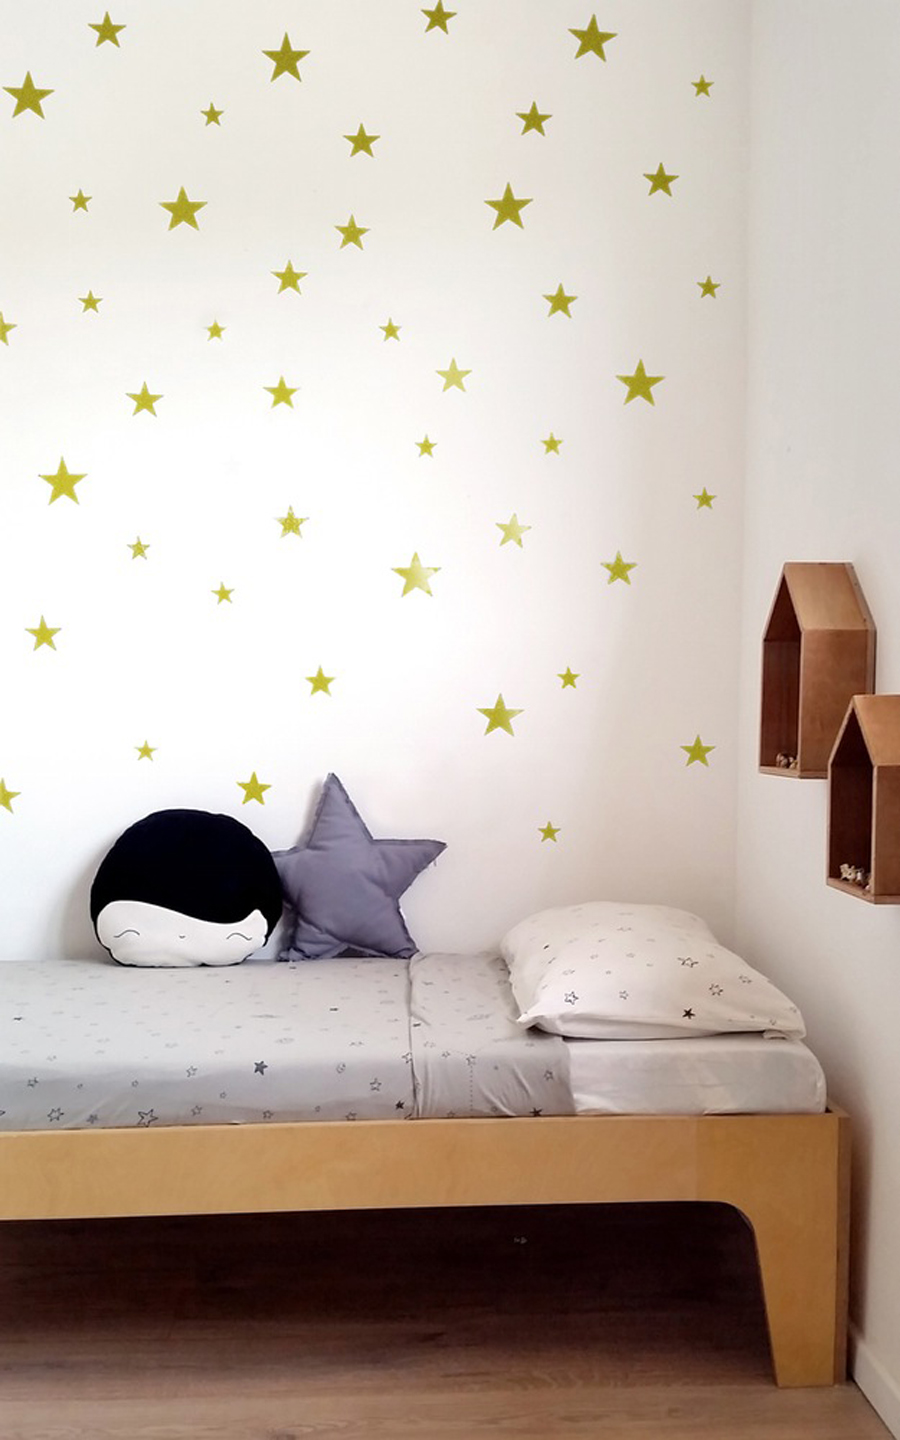 large_gold_star_wallstickers_tayostudio